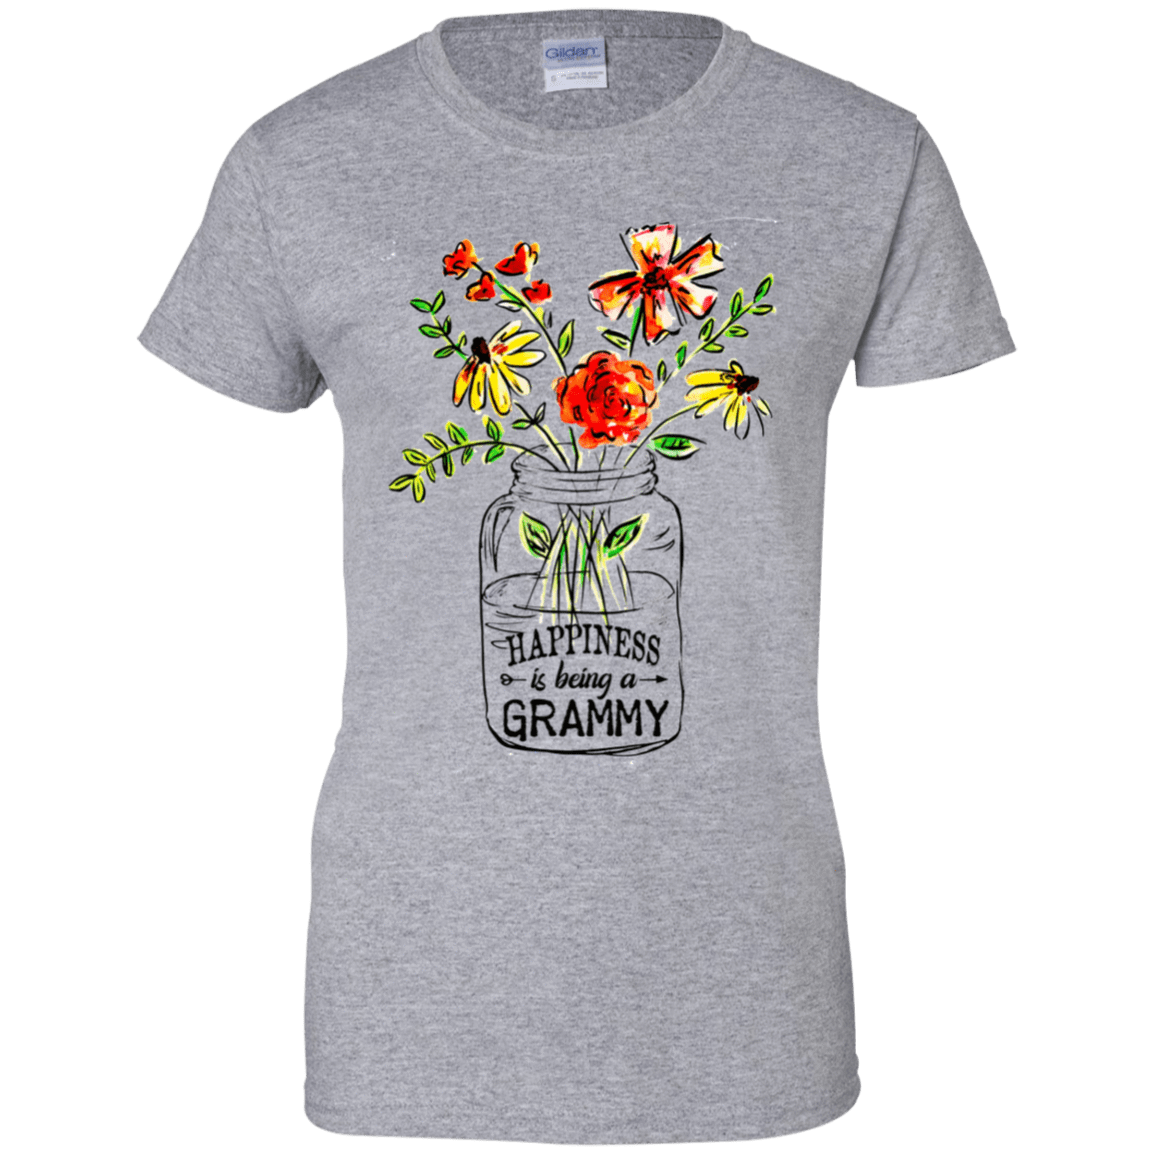 Happiness Is Being A Grammy Flower 939-9265-74371525-44821 - Tee Ript